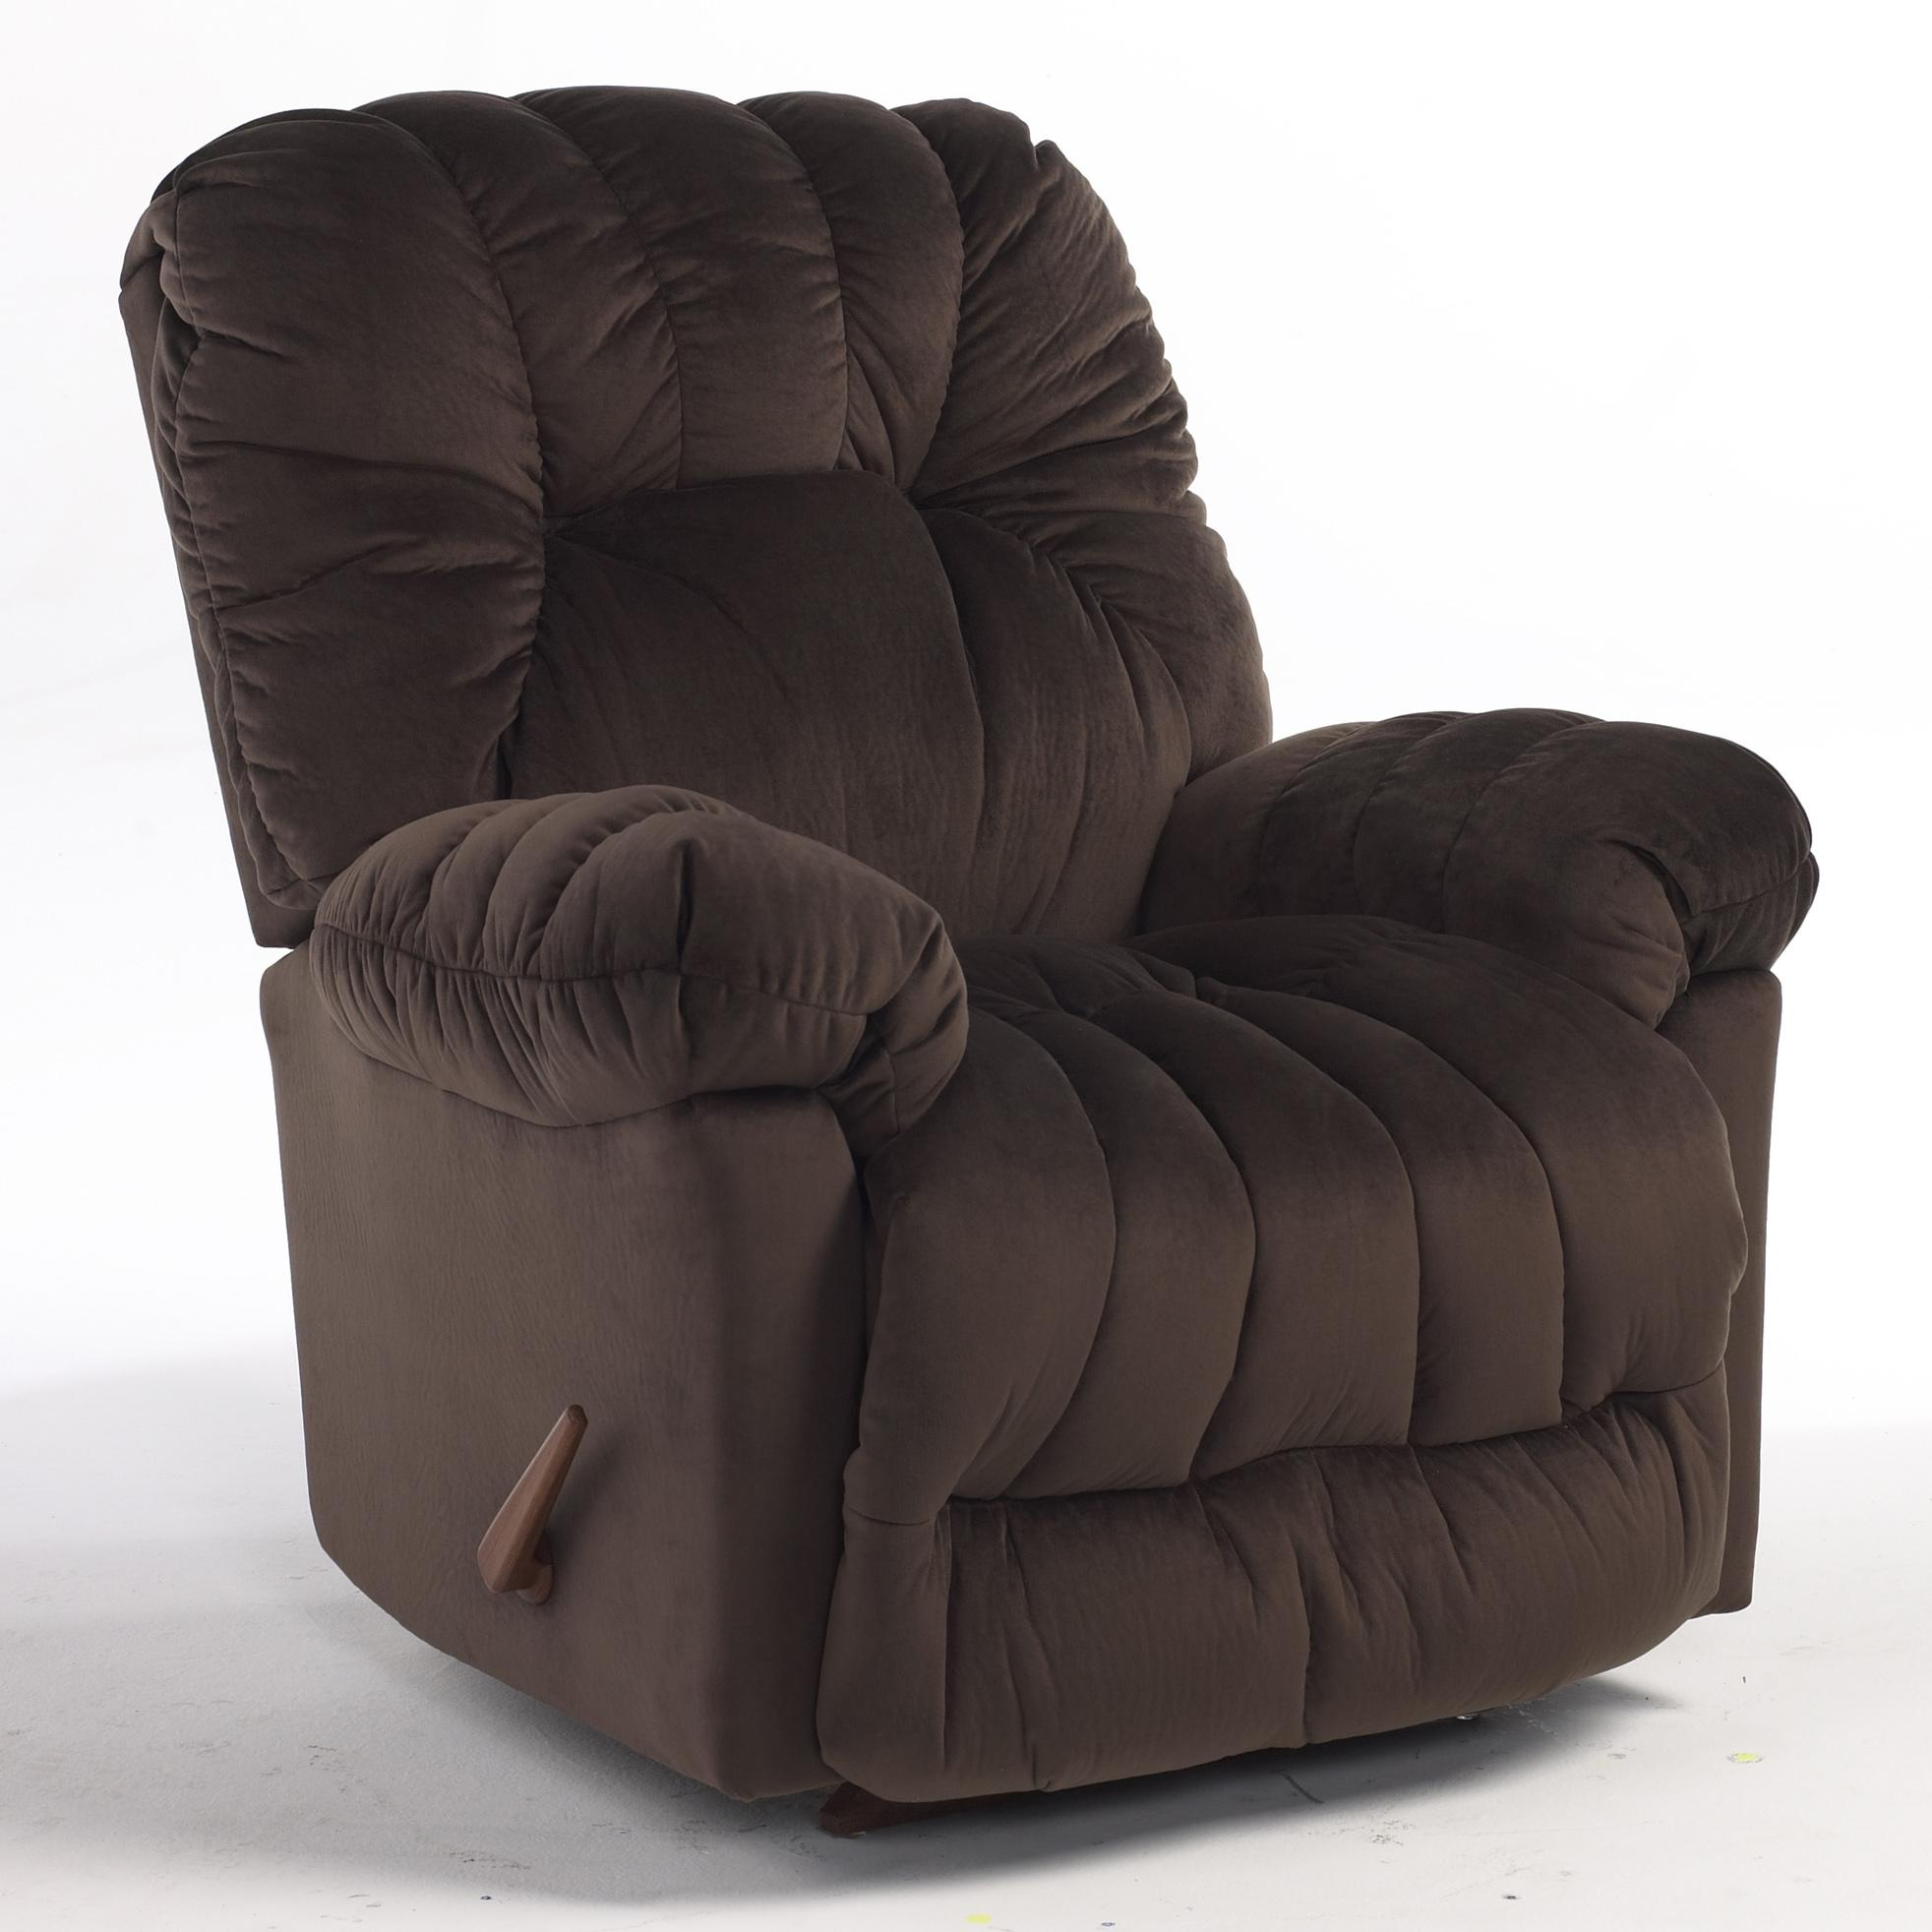 Recliners Medium Conen Swivel Rocking Reclining Chair By Best Home Furnishings Wolf Furniture